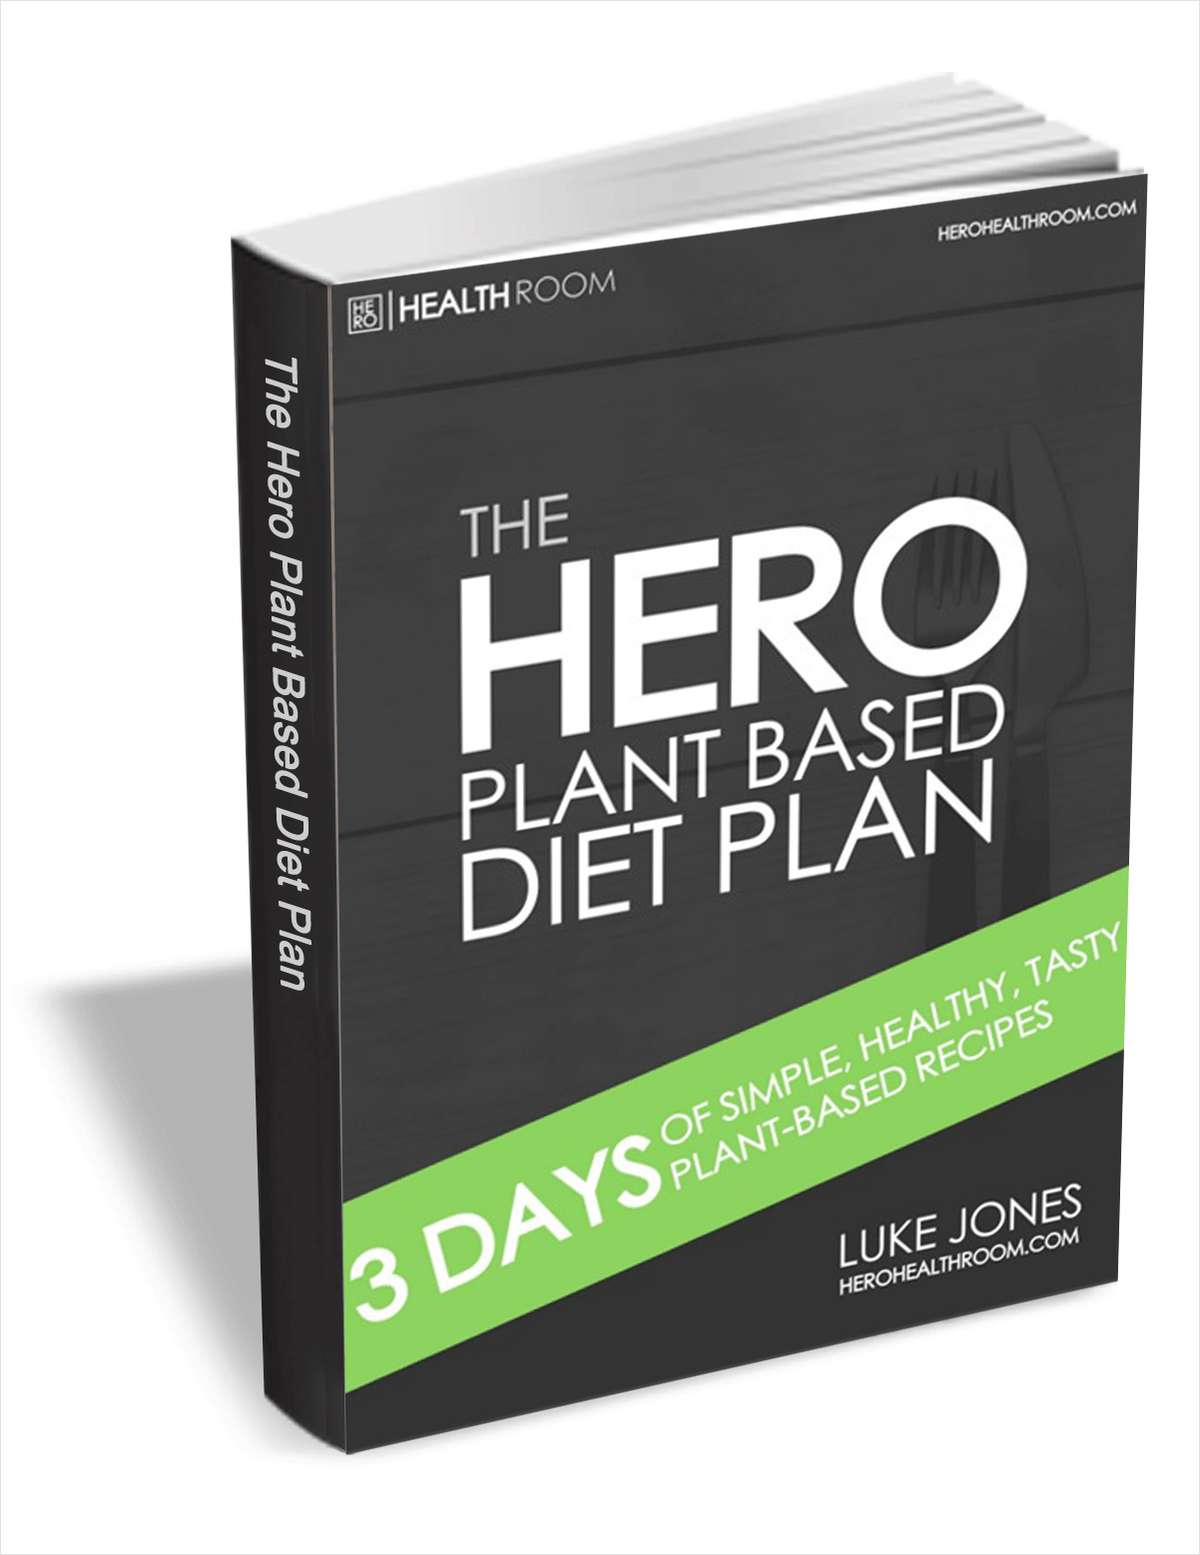 The HERO Plant Based Diet Plan